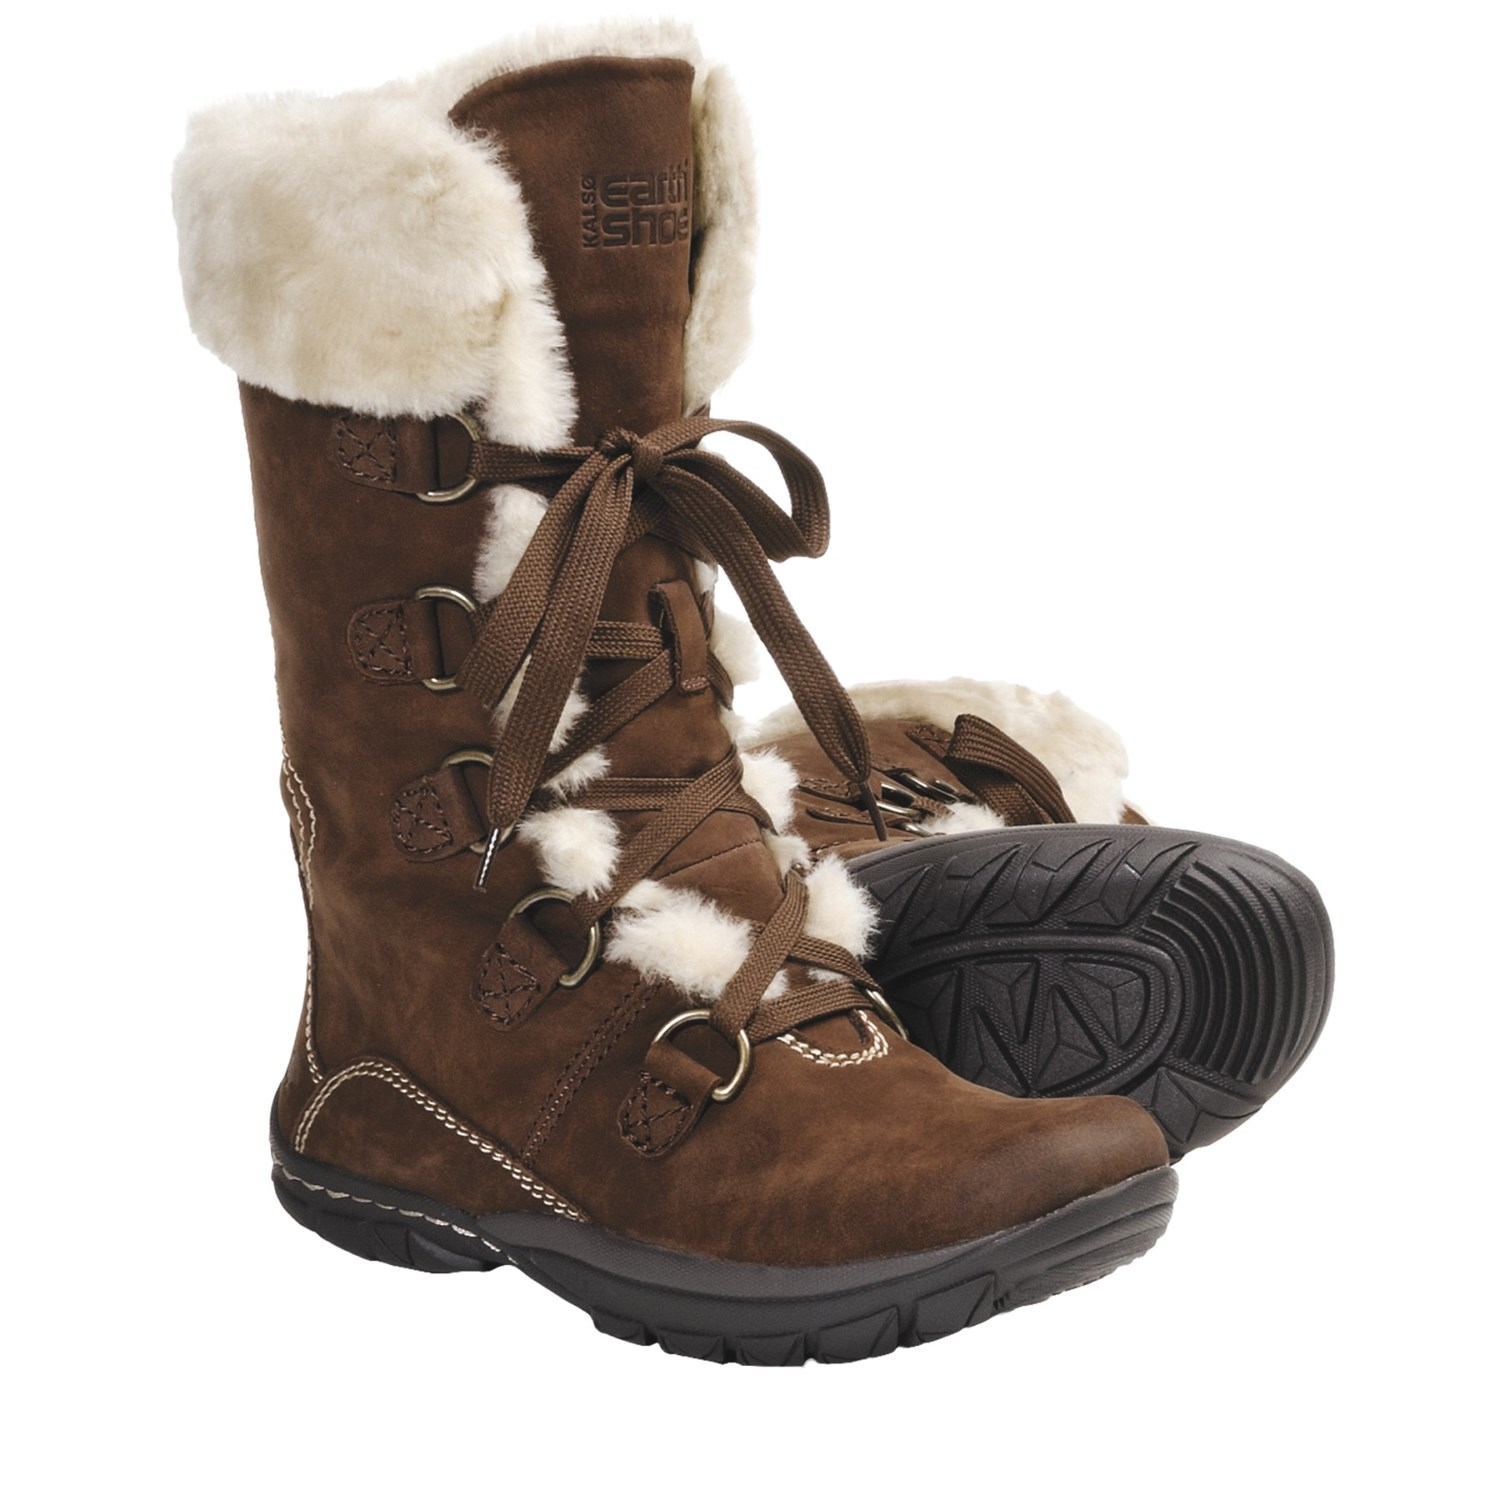 Innovative Details About NEW WOMENS LADIES FUR LINED WINTER BOOTS FLAT WARM THICK